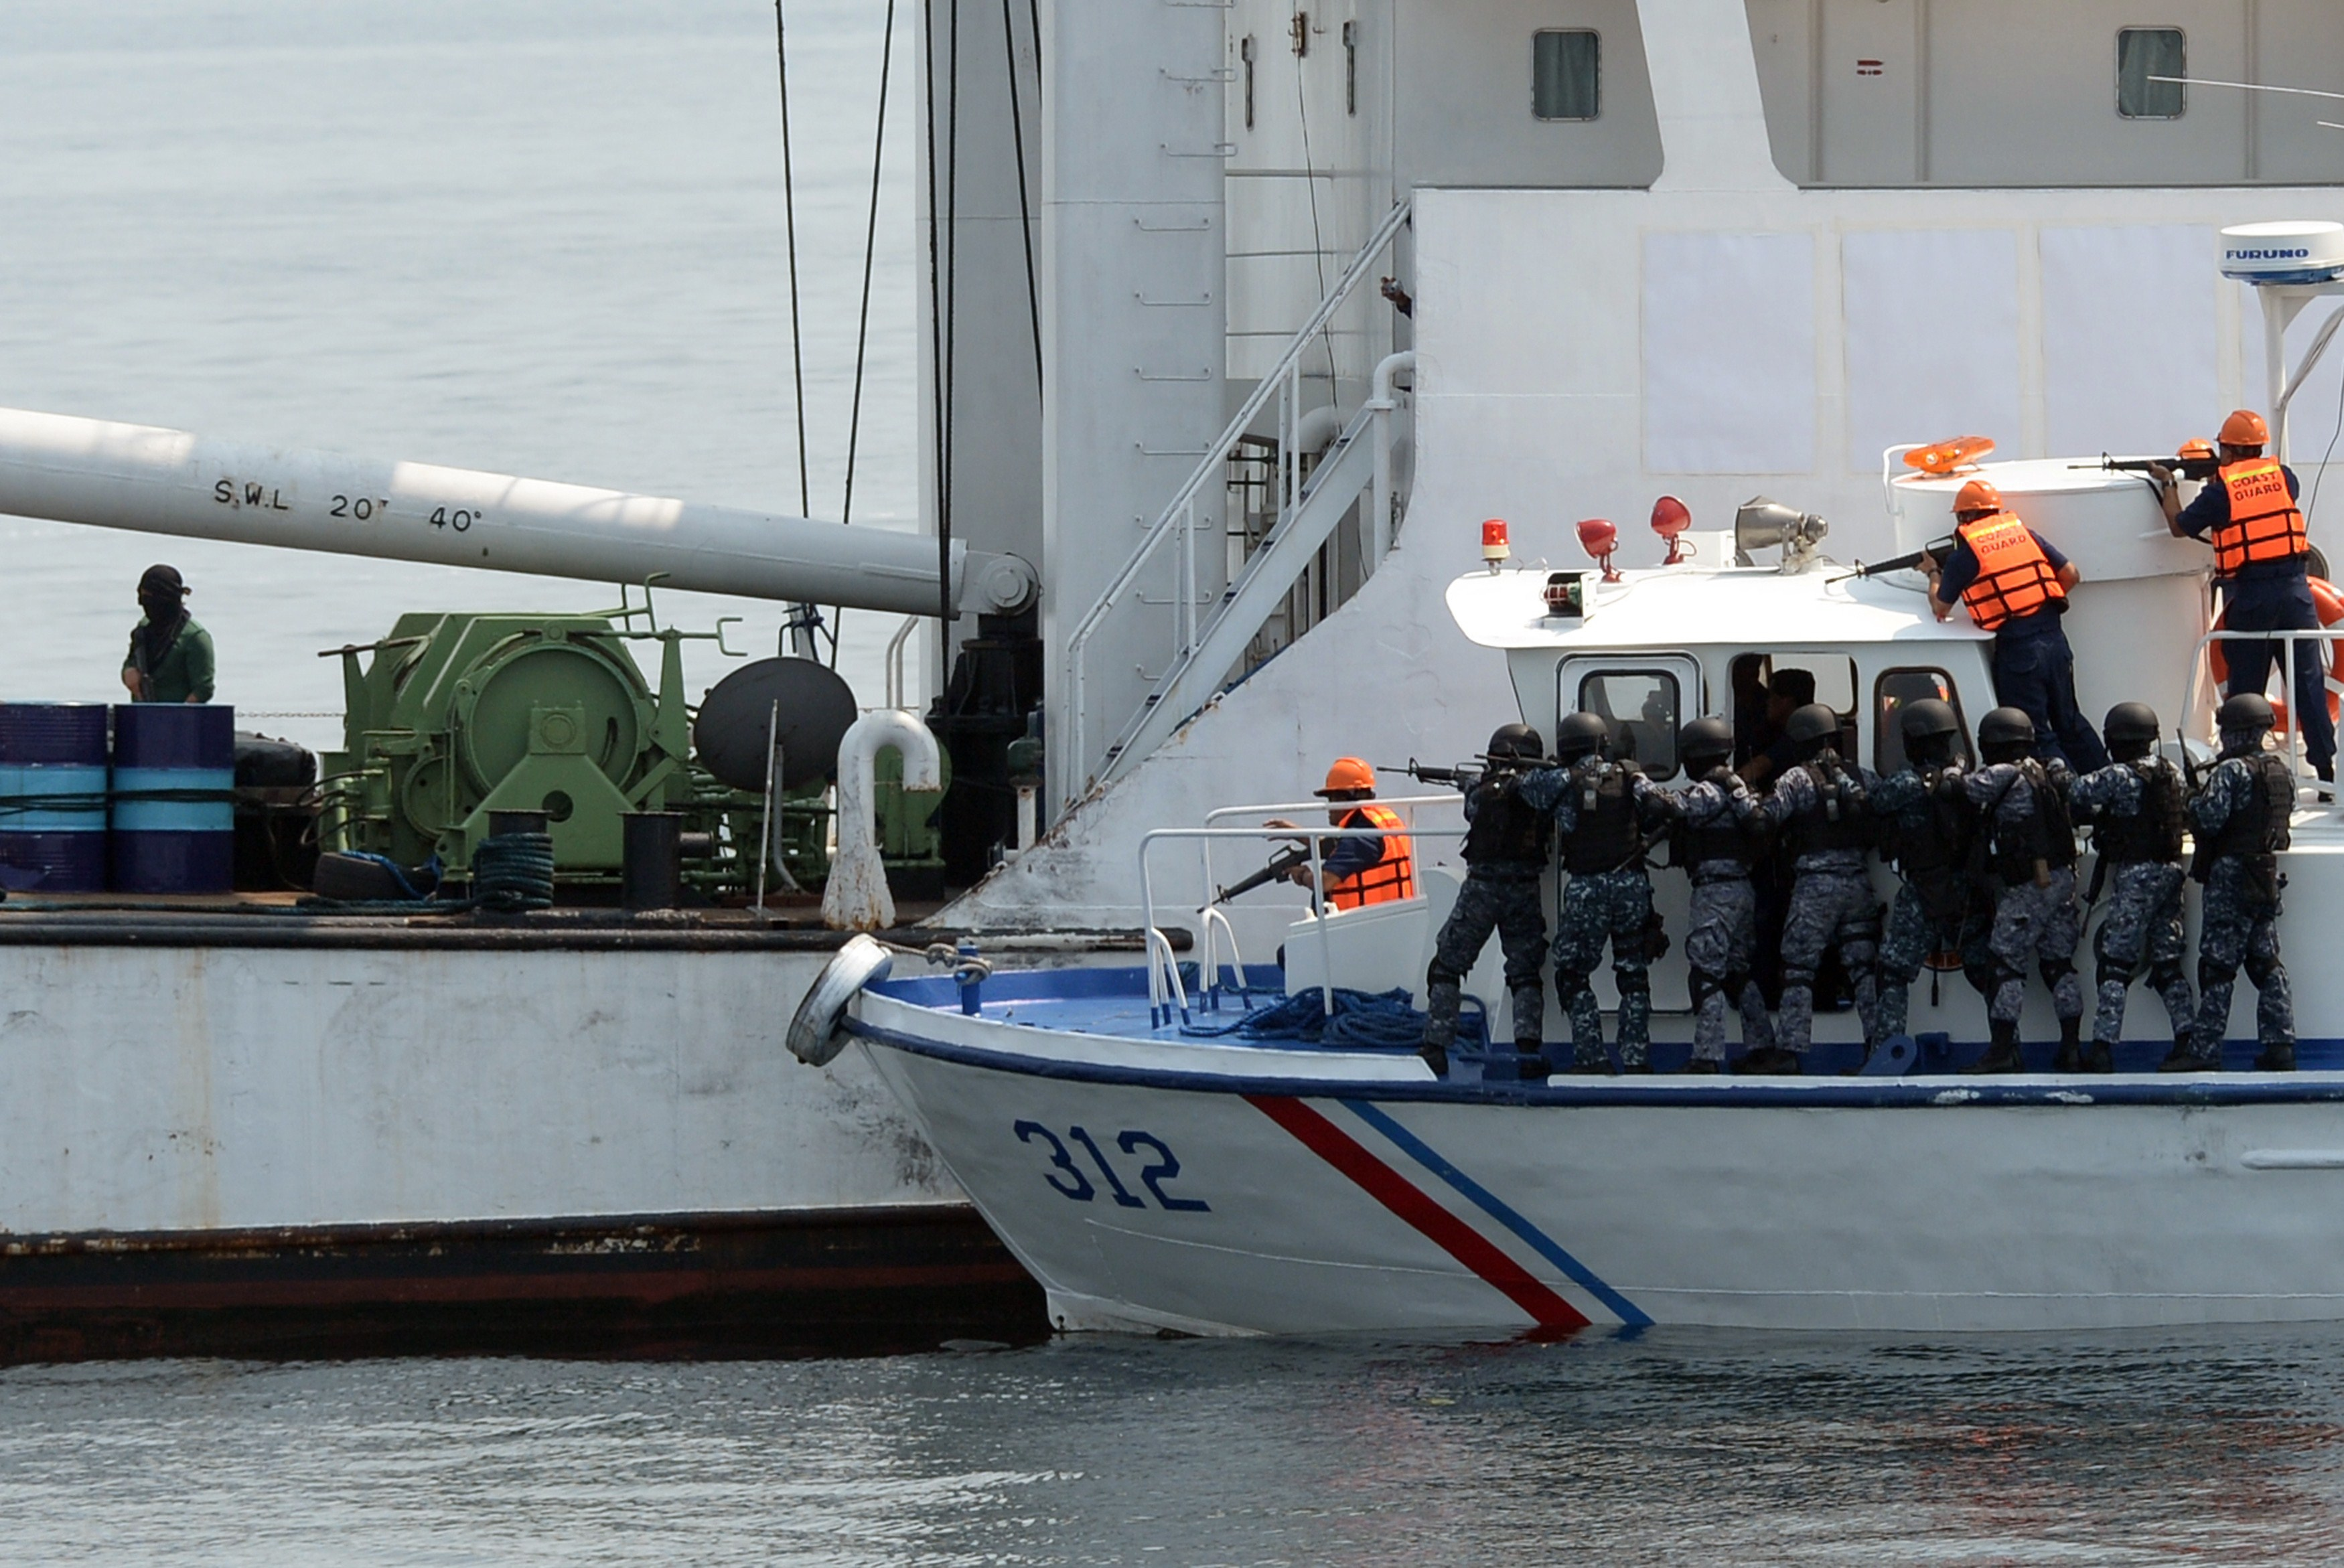 Philippine coastguard personnel prepare to board a ship during a simulation of a sea jacking scenario as part of the combined Philippine-Japan maritime exercise off Manila bay, in the mouth of South China sea on May 6, 2015. Photo by TED ALJIBE/AFP/Getty Images.